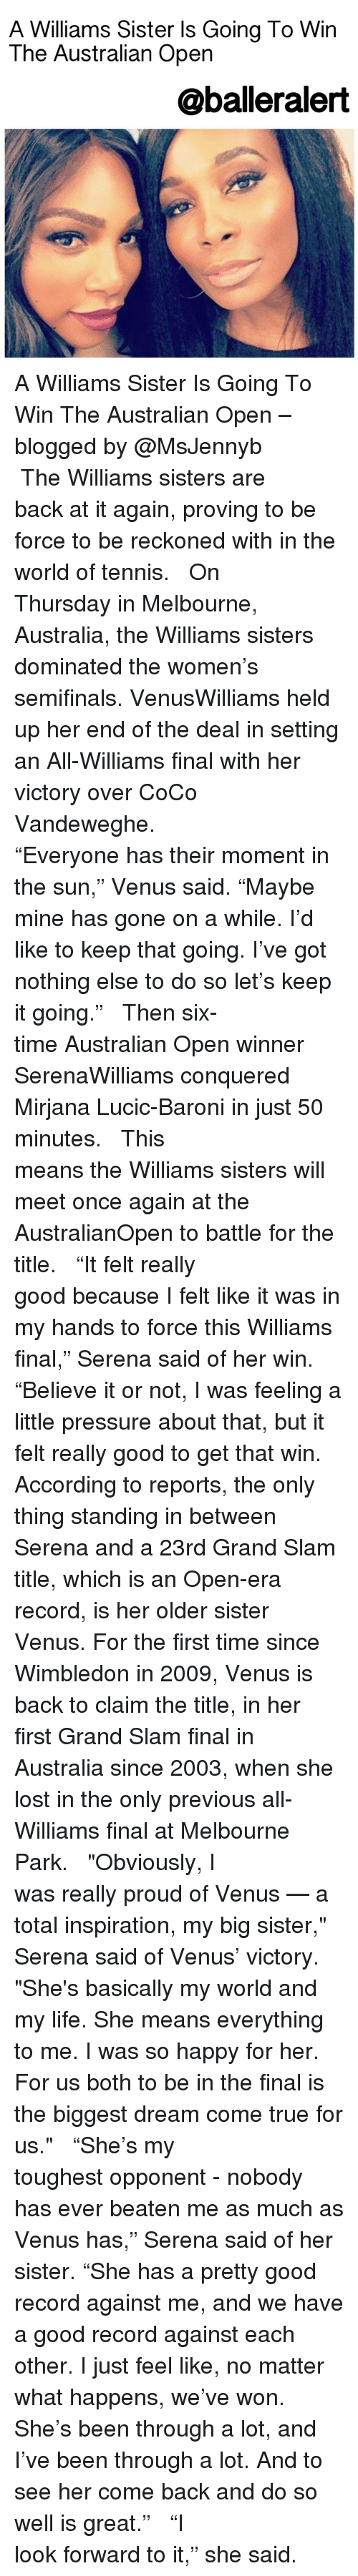 """Reckonize: A Williams Sister Is Going To Win  The Australian Open  @balleralert A Williams Sister Is Going To Win The Australian Open – blogged by @MsJennyb ⠀⠀⠀⠀⠀⠀⠀⠀⠀ ⠀⠀⠀⠀⠀⠀⠀⠀⠀ The Williams sisters are back at it again, proving to be force to be reckoned with in the world of tennis. ⠀⠀⠀⠀⠀⠀⠀⠀⠀ ⠀⠀⠀⠀⠀⠀⠀⠀⠀ On Thursday in Melbourne, Australia, the Williams sisters dominated the women's semifinals. VenusWilliams held up her end of the deal in setting an All-Williams final with her victory over CoCo Vandeweghe. ⠀⠀⠀⠀⠀⠀⠀⠀⠀ ⠀⠀⠀⠀⠀⠀⠀⠀⠀ """"Everyone has their moment in the sun,"""" Venus said. """"Maybe mine has gone on a while. I'd like to keep that going. I've got nothing else to do so let's keep it going."""" ⠀⠀⠀⠀⠀⠀⠀⠀⠀ ⠀⠀⠀⠀⠀⠀⠀⠀⠀ Then six-time Australian Open winner SerenaWilliams conquered Mirjana Lucic-Baroni in just 50 minutes. ⠀⠀⠀⠀⠀⠀⠀⠀⠀ ⠀⠀⠀⠀⠀⠀⠀⠀⠀ This means the Williams sisters will meet once again at the AustralianOpen to battle for the title. ⠀⠀⠀⠀⠀⠀⠀⠀⠀ ⠀⠀⠀⠀⠀⠀⠀⠀⠀ """"It felt really good because I felt like it was in my hands to force this Williams final,"""" Serena said of her win. """"Believe it or not, I was feeling a little pressure about that, but it felt really good to get that win. According to reports, the only thing standing in between Serena and a 23rd Grand Slam title, which is an Open-era record, is her older sister Venus. For the first time since Wimbledon in 2009, Venus is back to claim the title, in her first Grand Slam final in Australia since 2003, when she lost in the only previous all-Williams final at Melbourne Park. ⠀⠀⠀⠀⠀⠀⠀⠀⠀ ⠀⠀⠀⠀⠀⠀⠀⠀⠀ """"Obviously, I was really proud of Venus — a total inspiration, my big sister,"""" Serena said of Venus' victory. """"She's basically my world and my life. She means everything to me. I was so happy for her. For us both to be in the final is the biggest dream come true for us."""" ⠀⠀⠀⠀⠀⠀⠀⠀⠀ ⠀⠀⠀⠀⠀⠀⠀⠀⠀ """"She's my toughest opponent - nobody has ever beaten me as much as Venus has,"""" Serena said of her sister. """"She has a pretty good record against me, and w"""